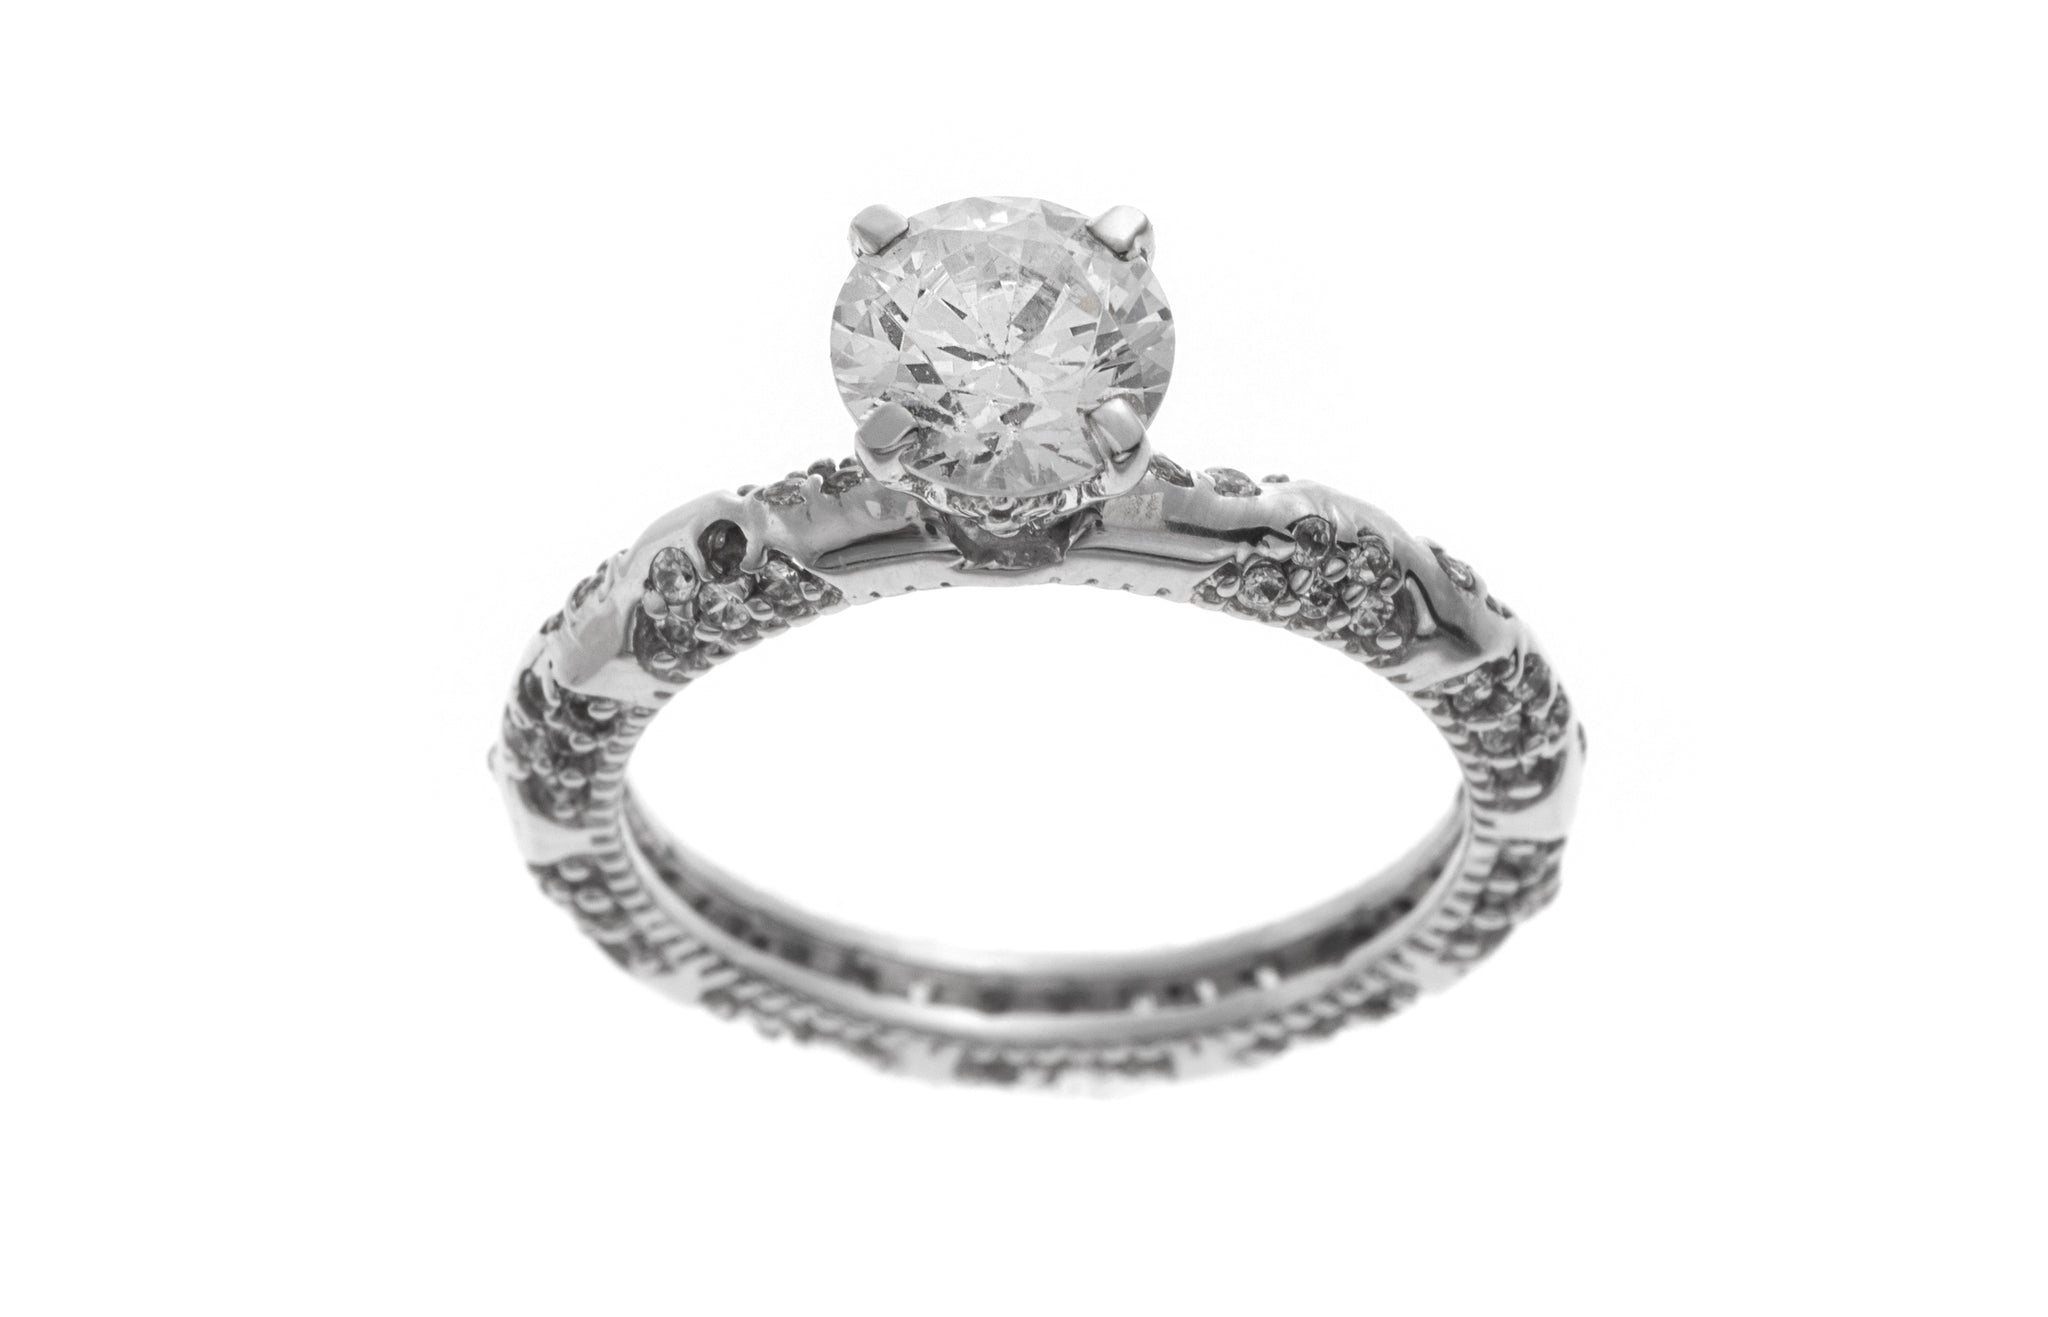 18ct White Gold Cubic Zirconia Engagement Ring (LR-2369)